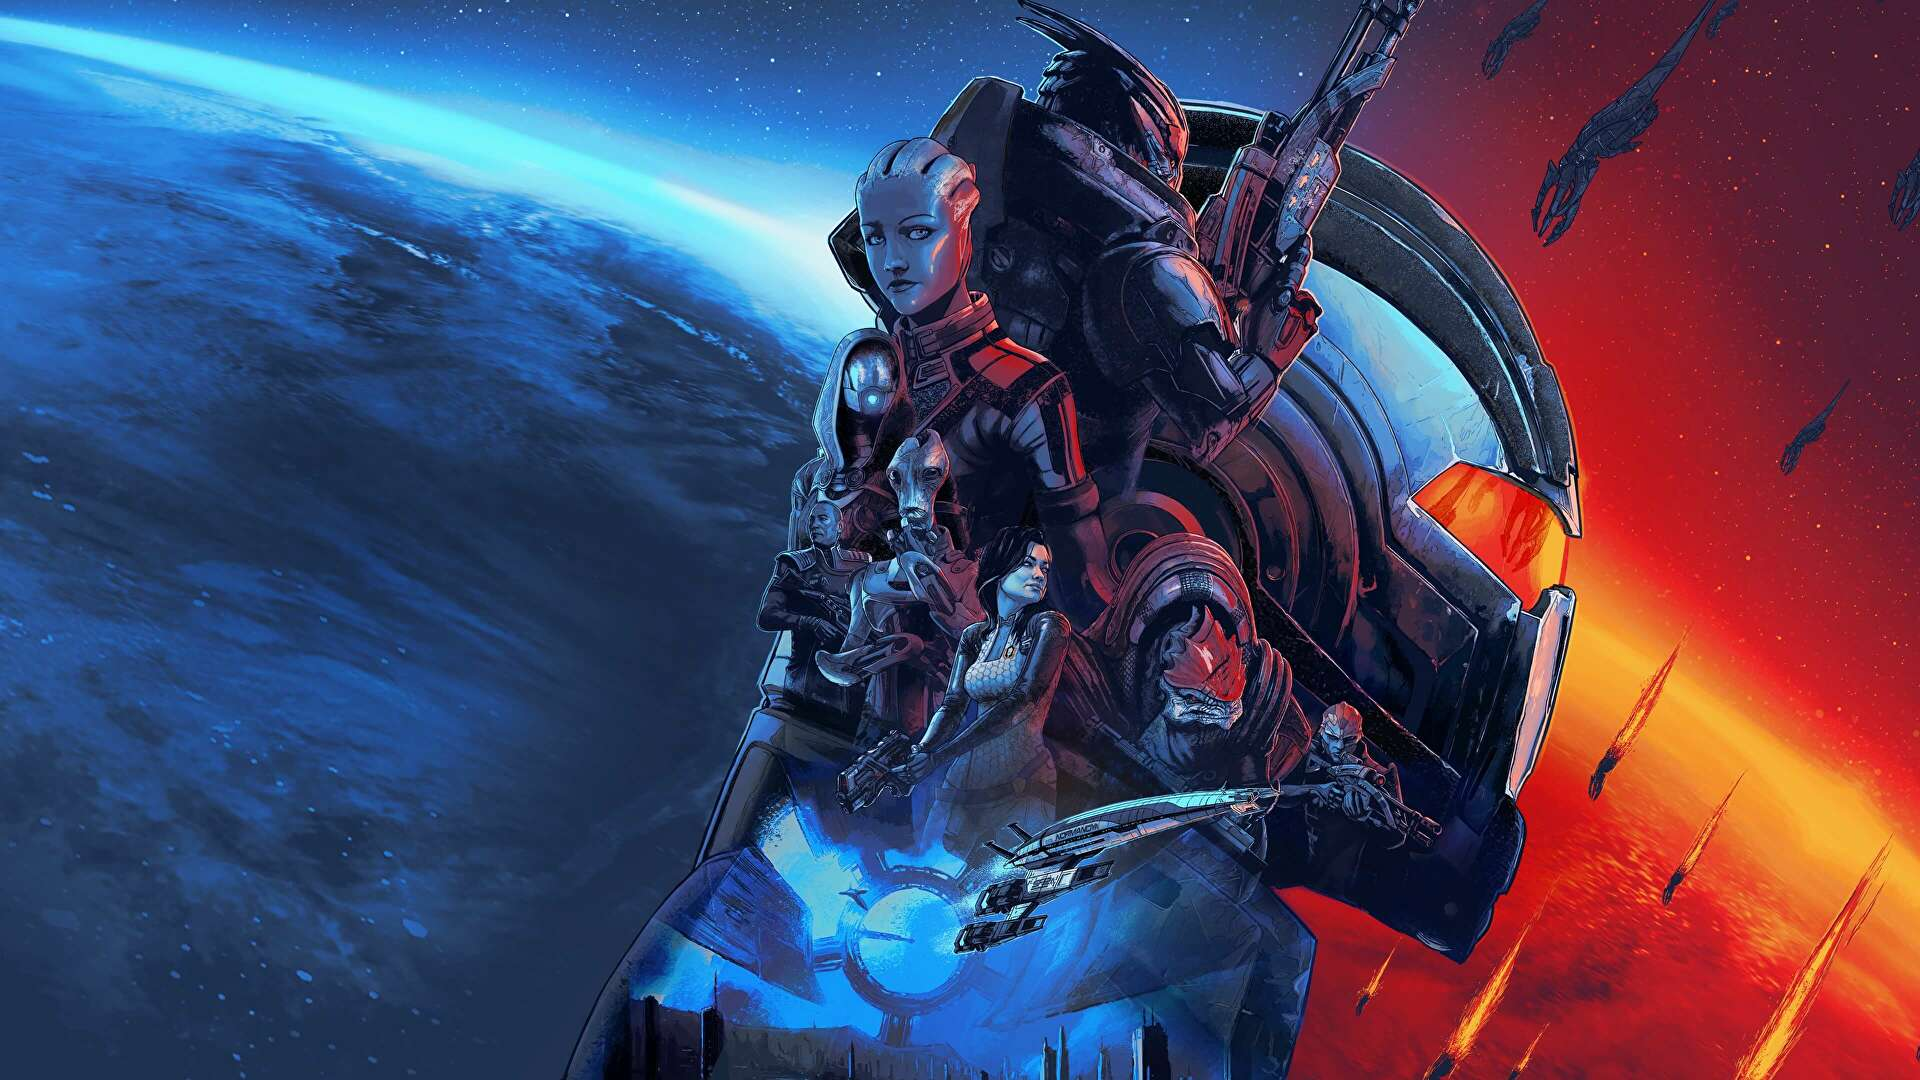 <p>BioWare Published a load of cool Mass Effect freebies Before the Legendary Edition launch thumbnail